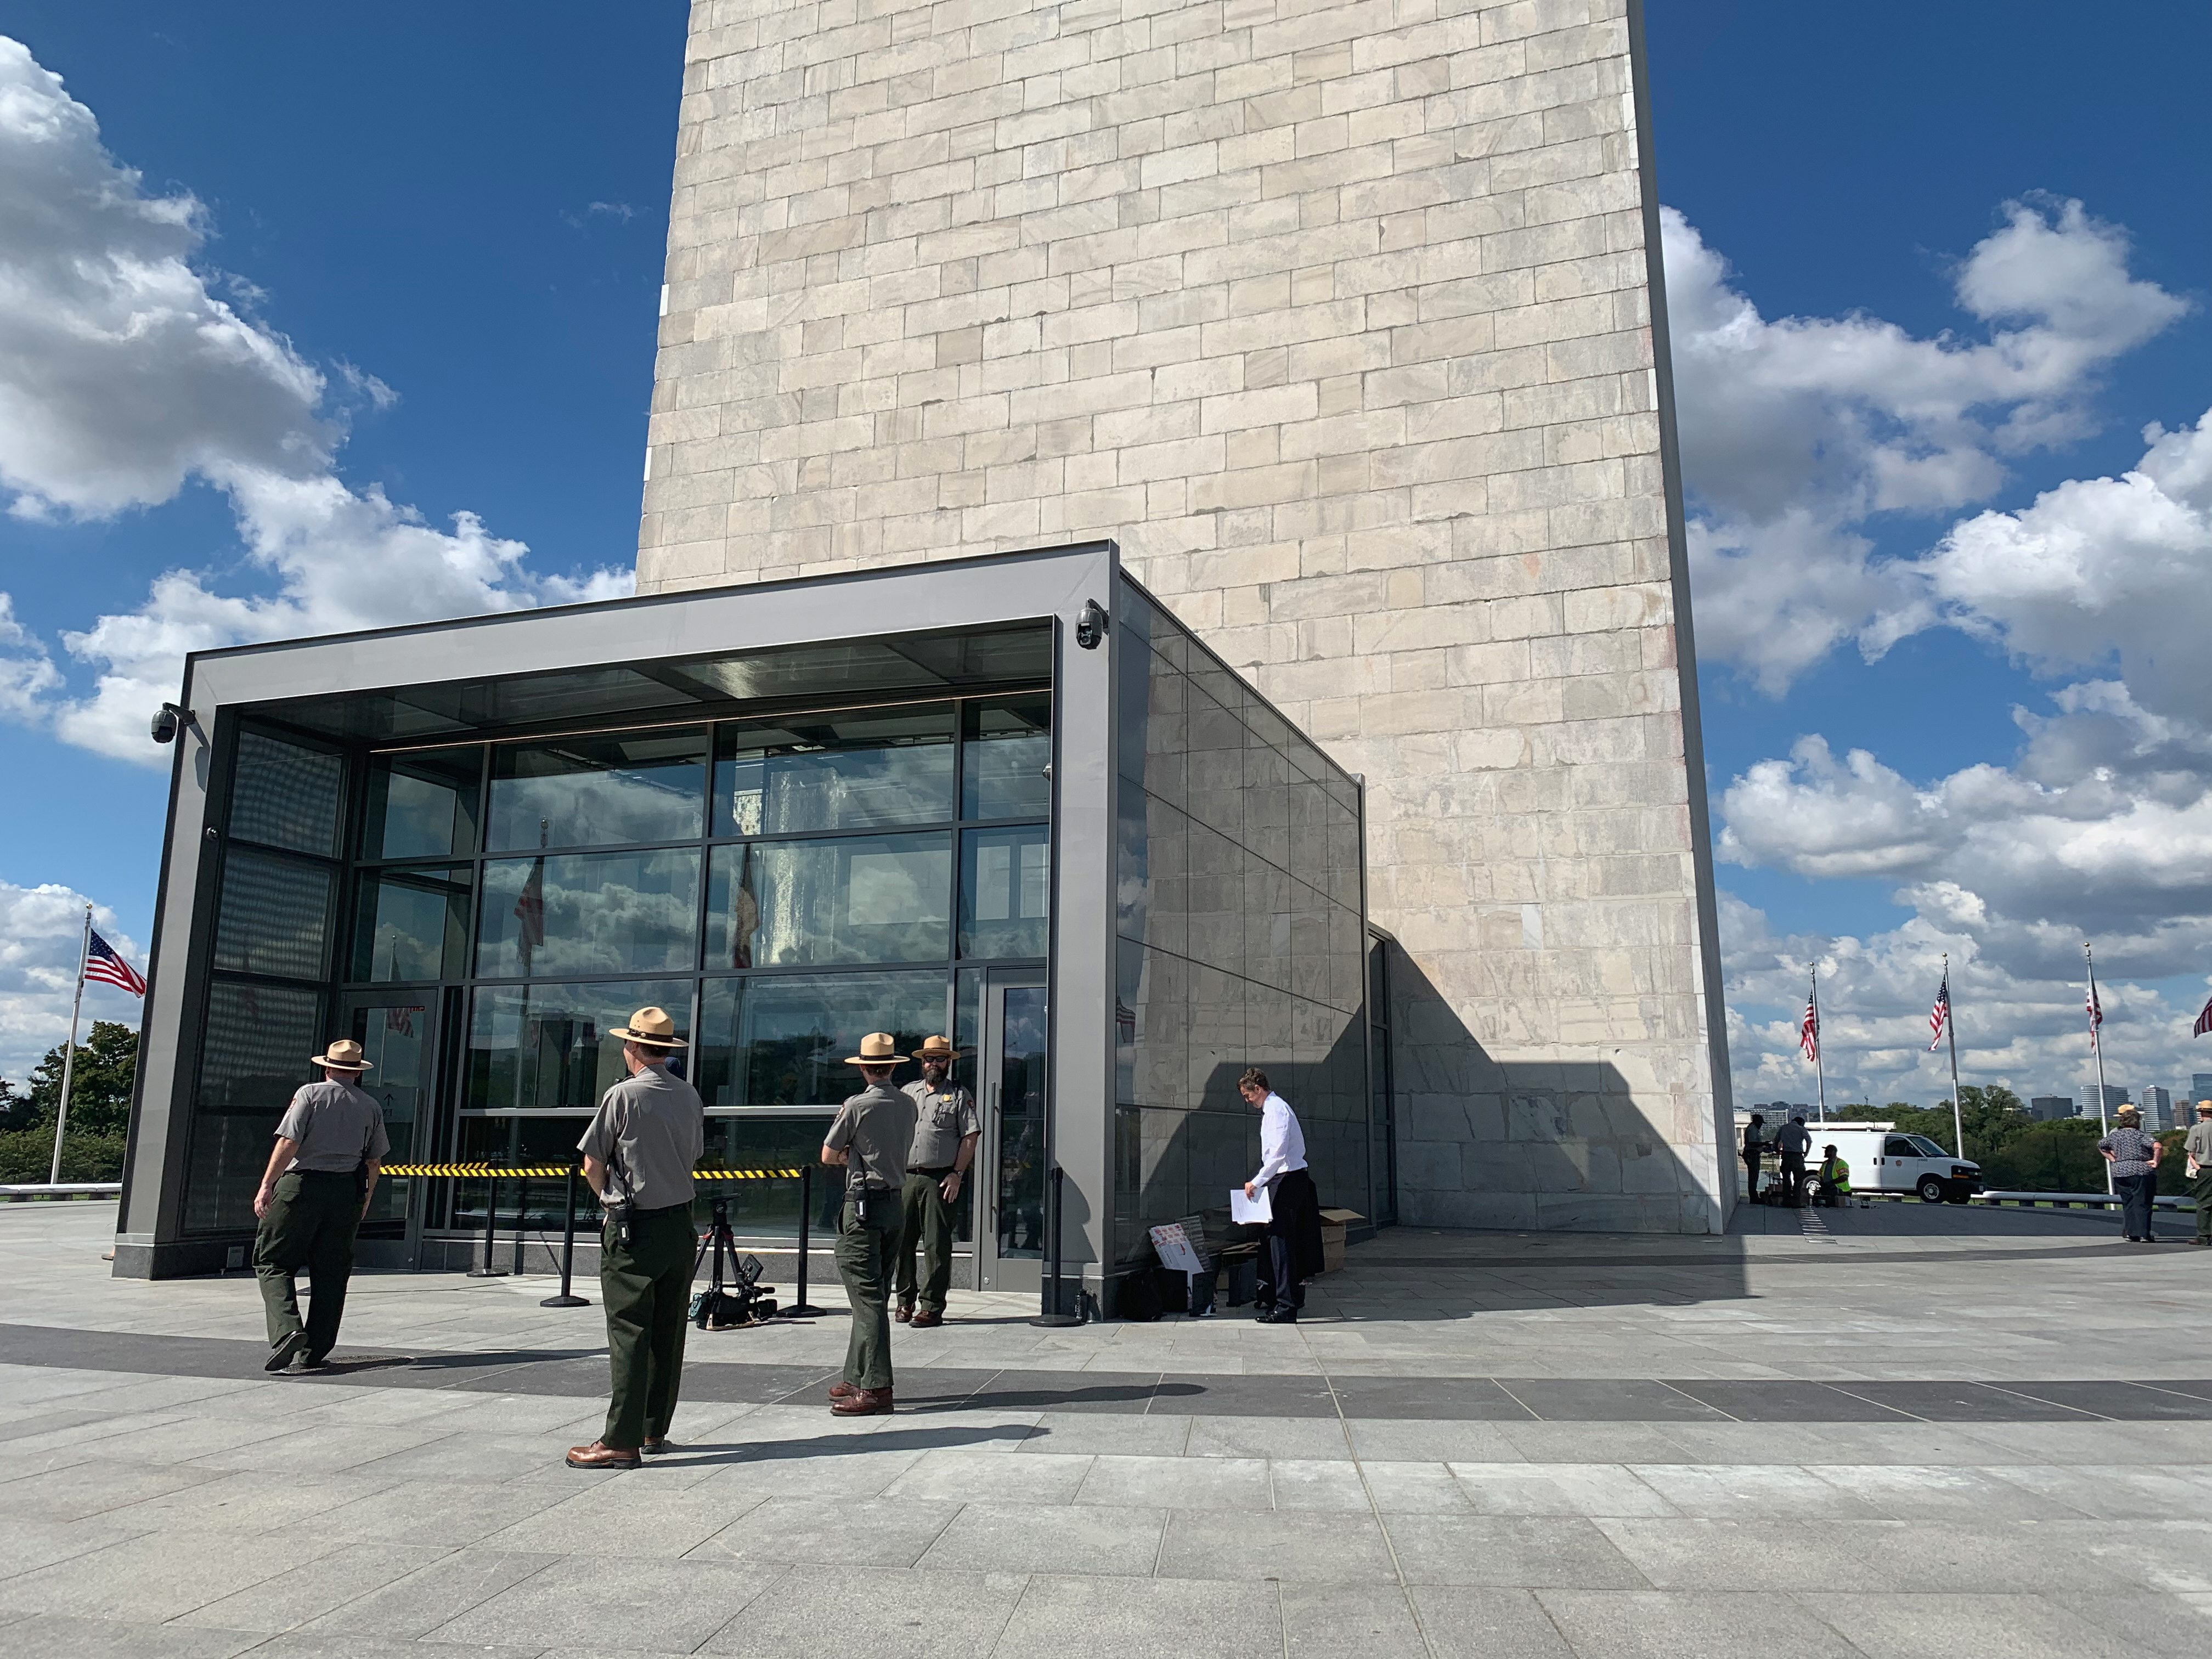 Washington Monument set to reopen after 3 years